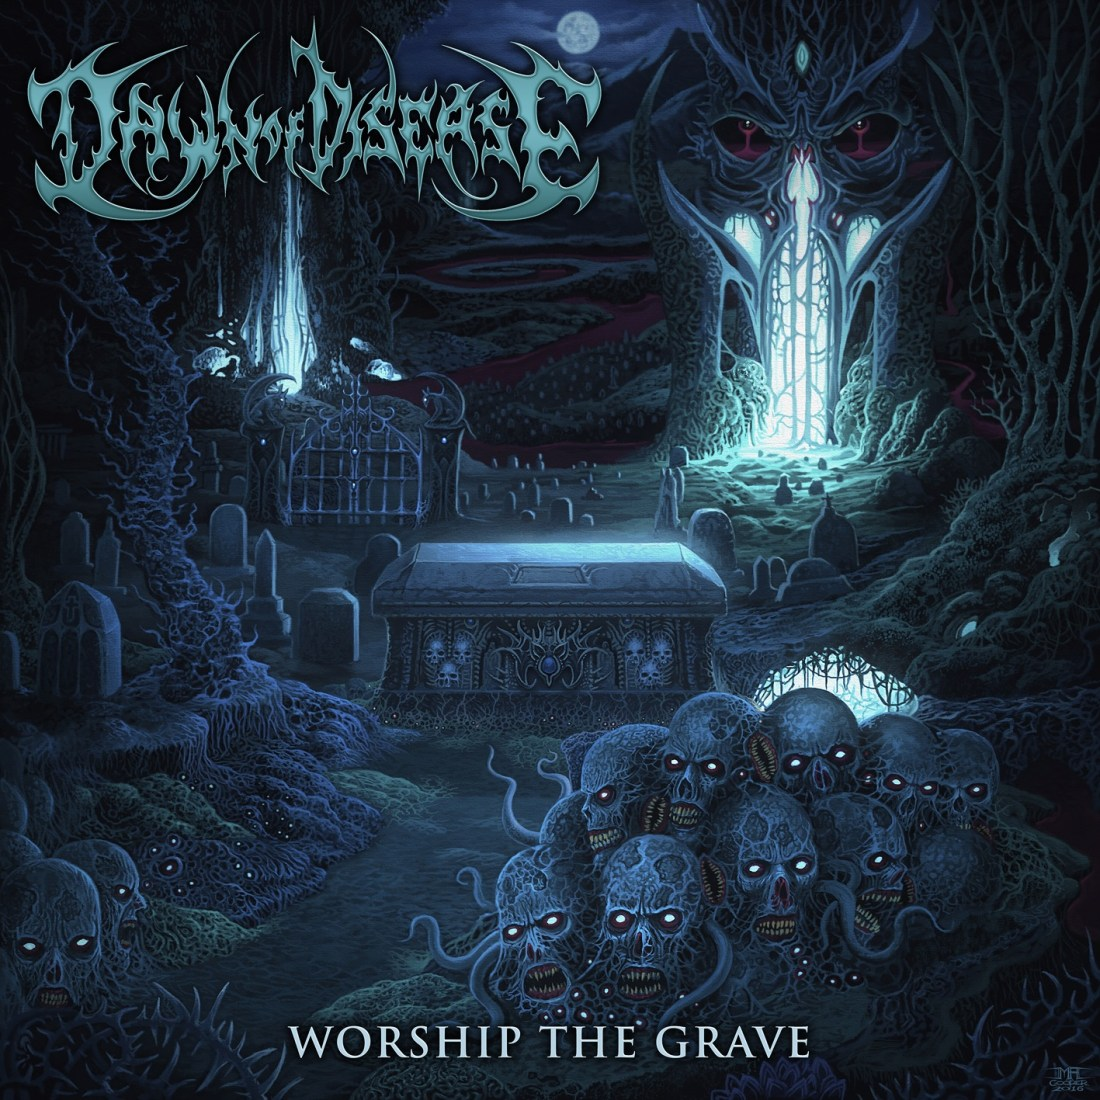 dawn_of_disease_worship_the_grave